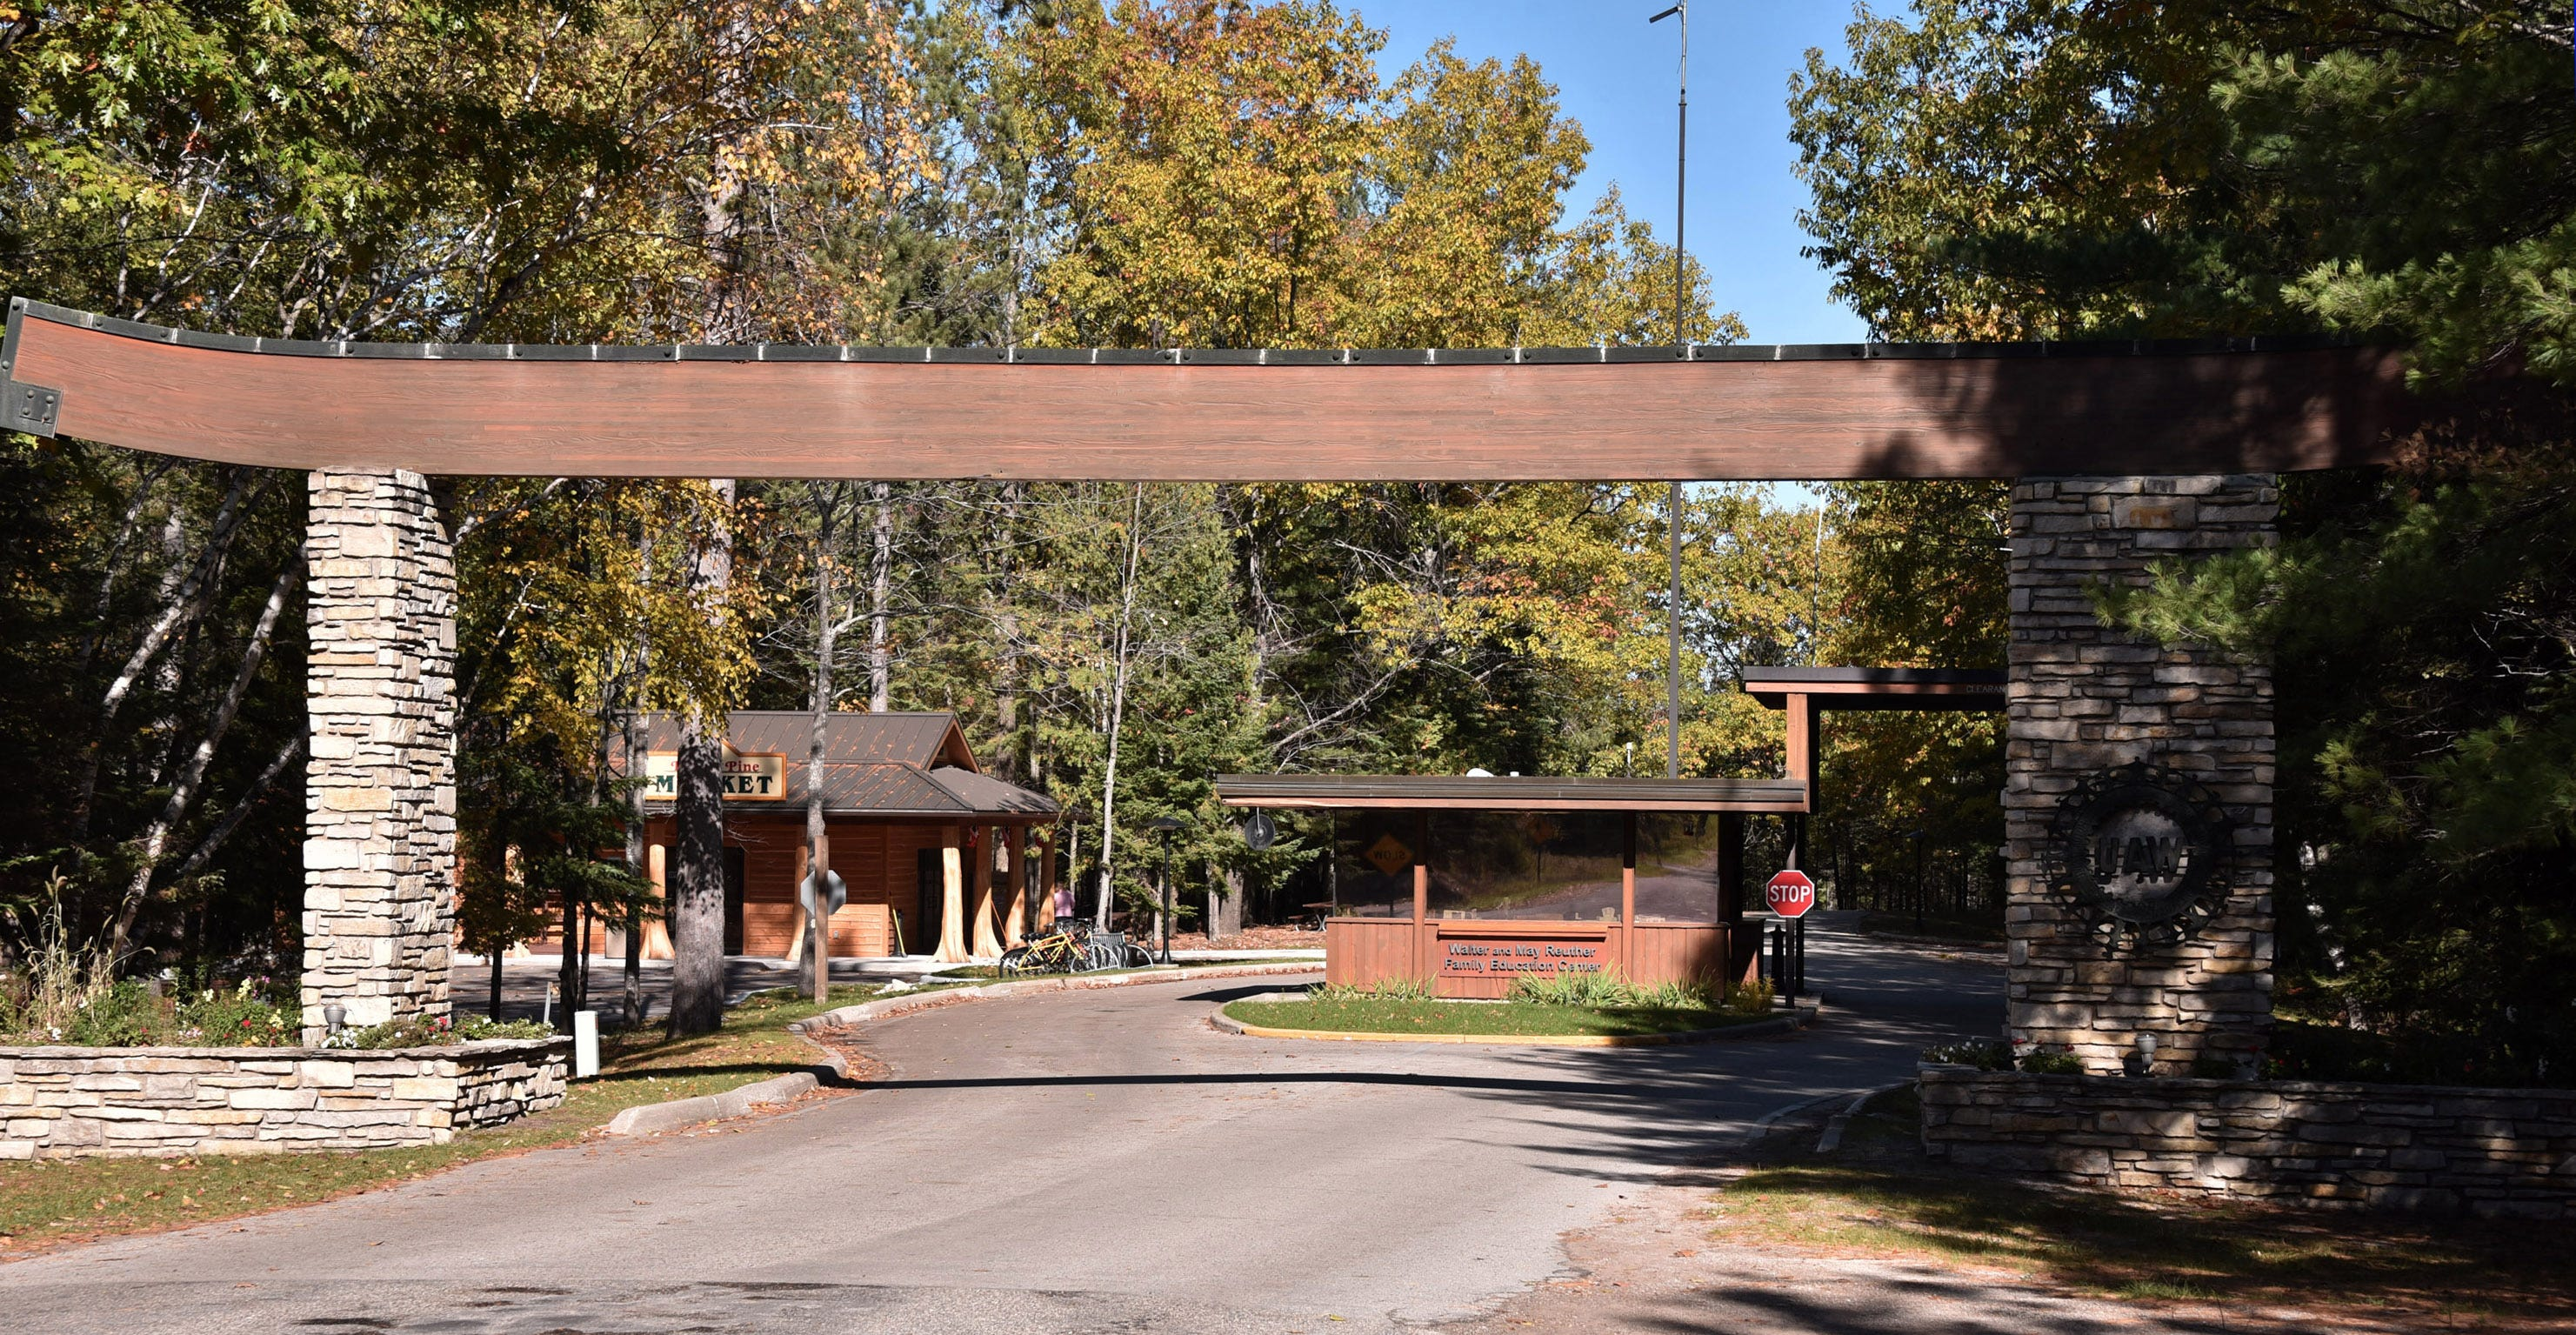 The entrance to the UAW property on Black Lake, south of Cheboygan, is seen on October 22.